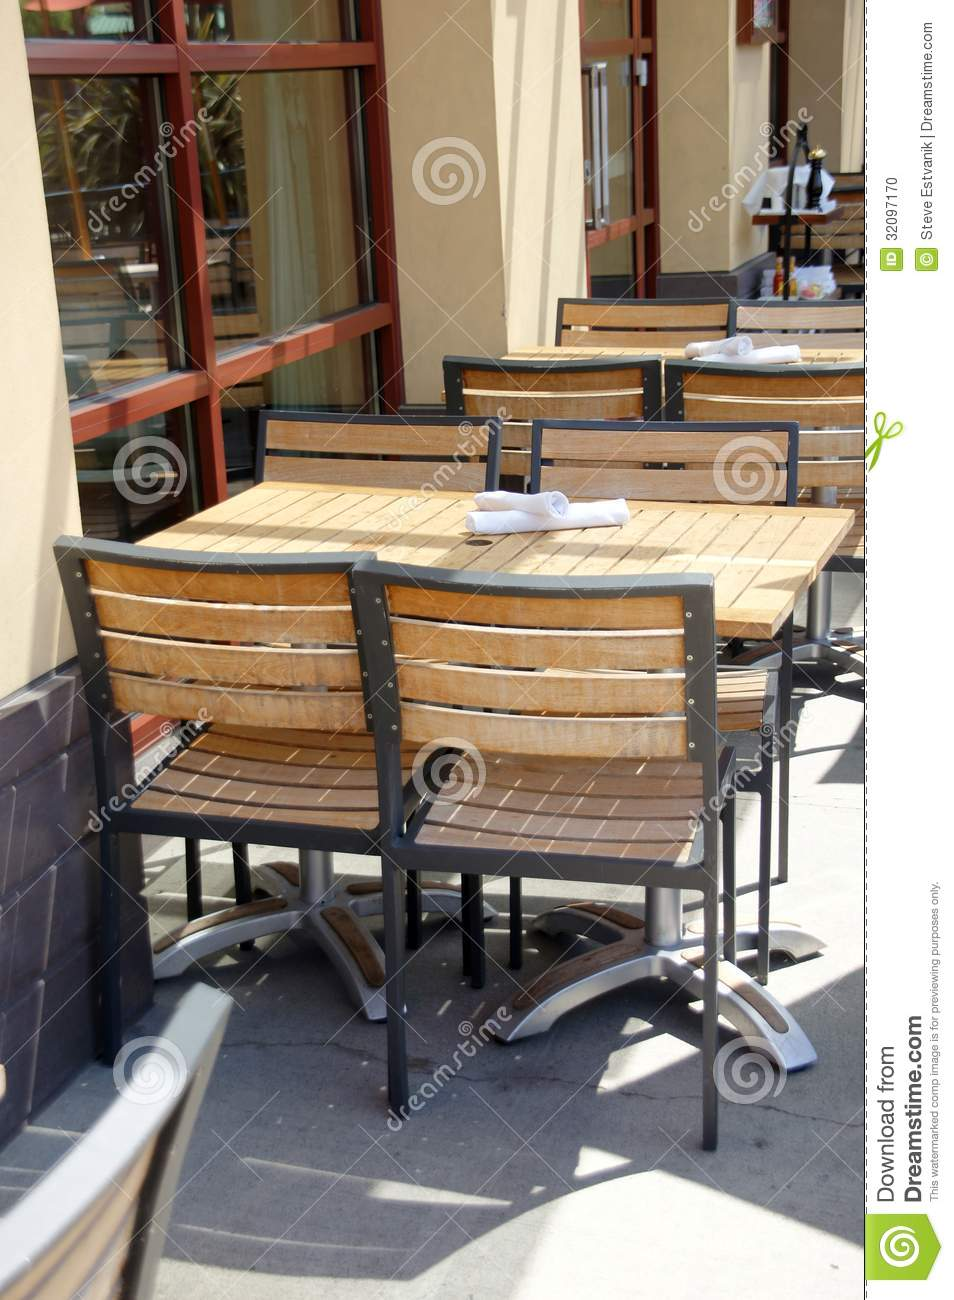 Wooden Tables And Chairs In Outdoor Restaurant